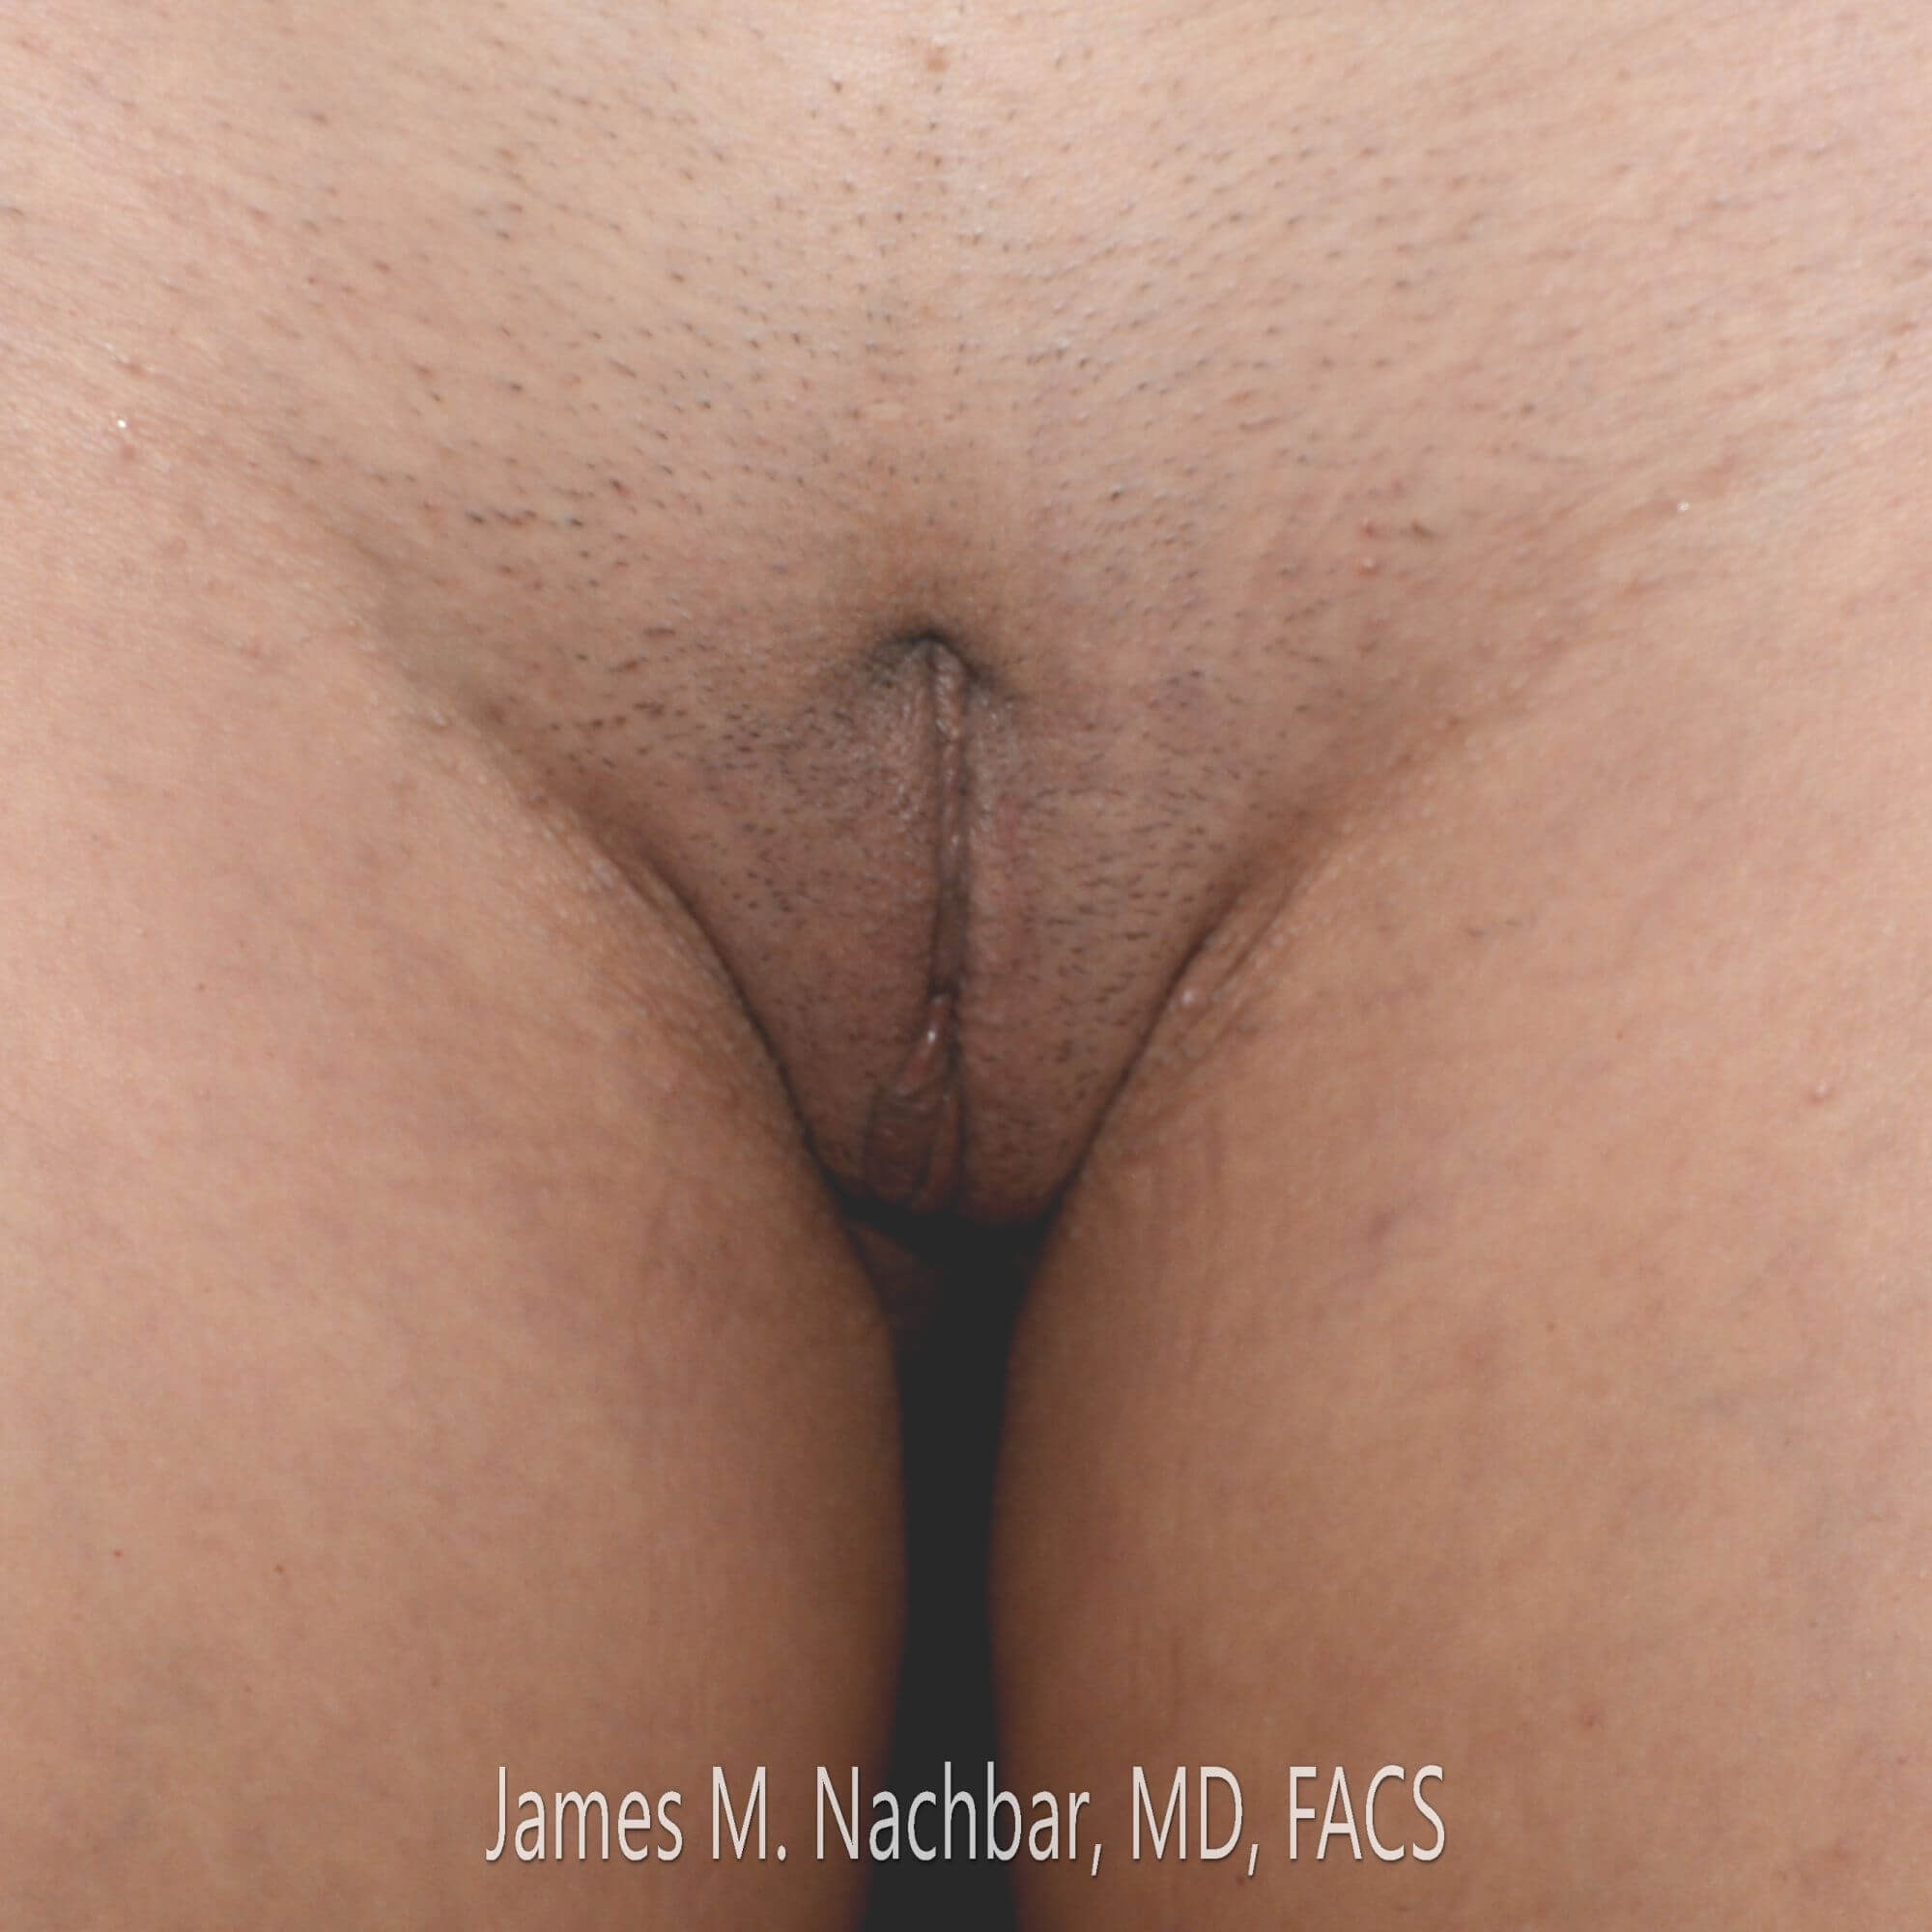 Wedge Labiaplasty, Front View Before